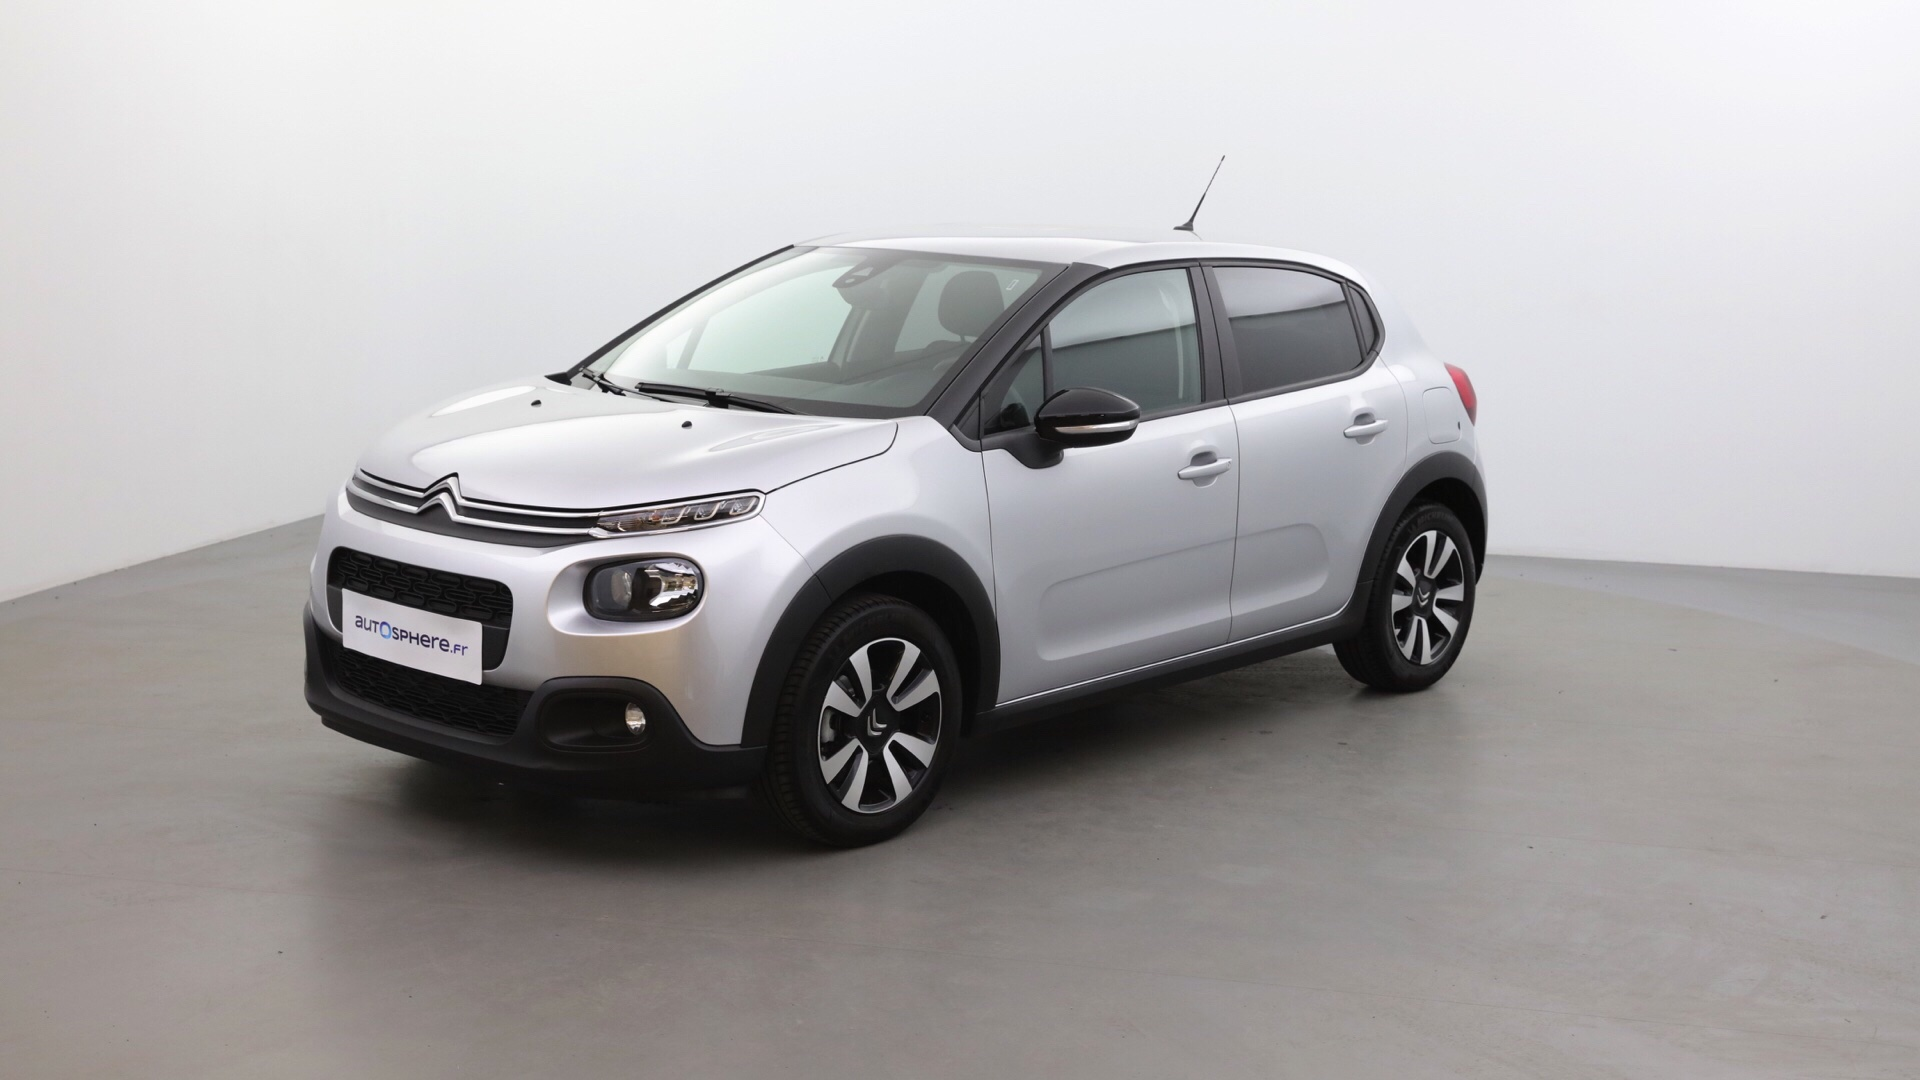 CITROEN C3 FEEL 1,2 PURE TECH 82 - Photo 1